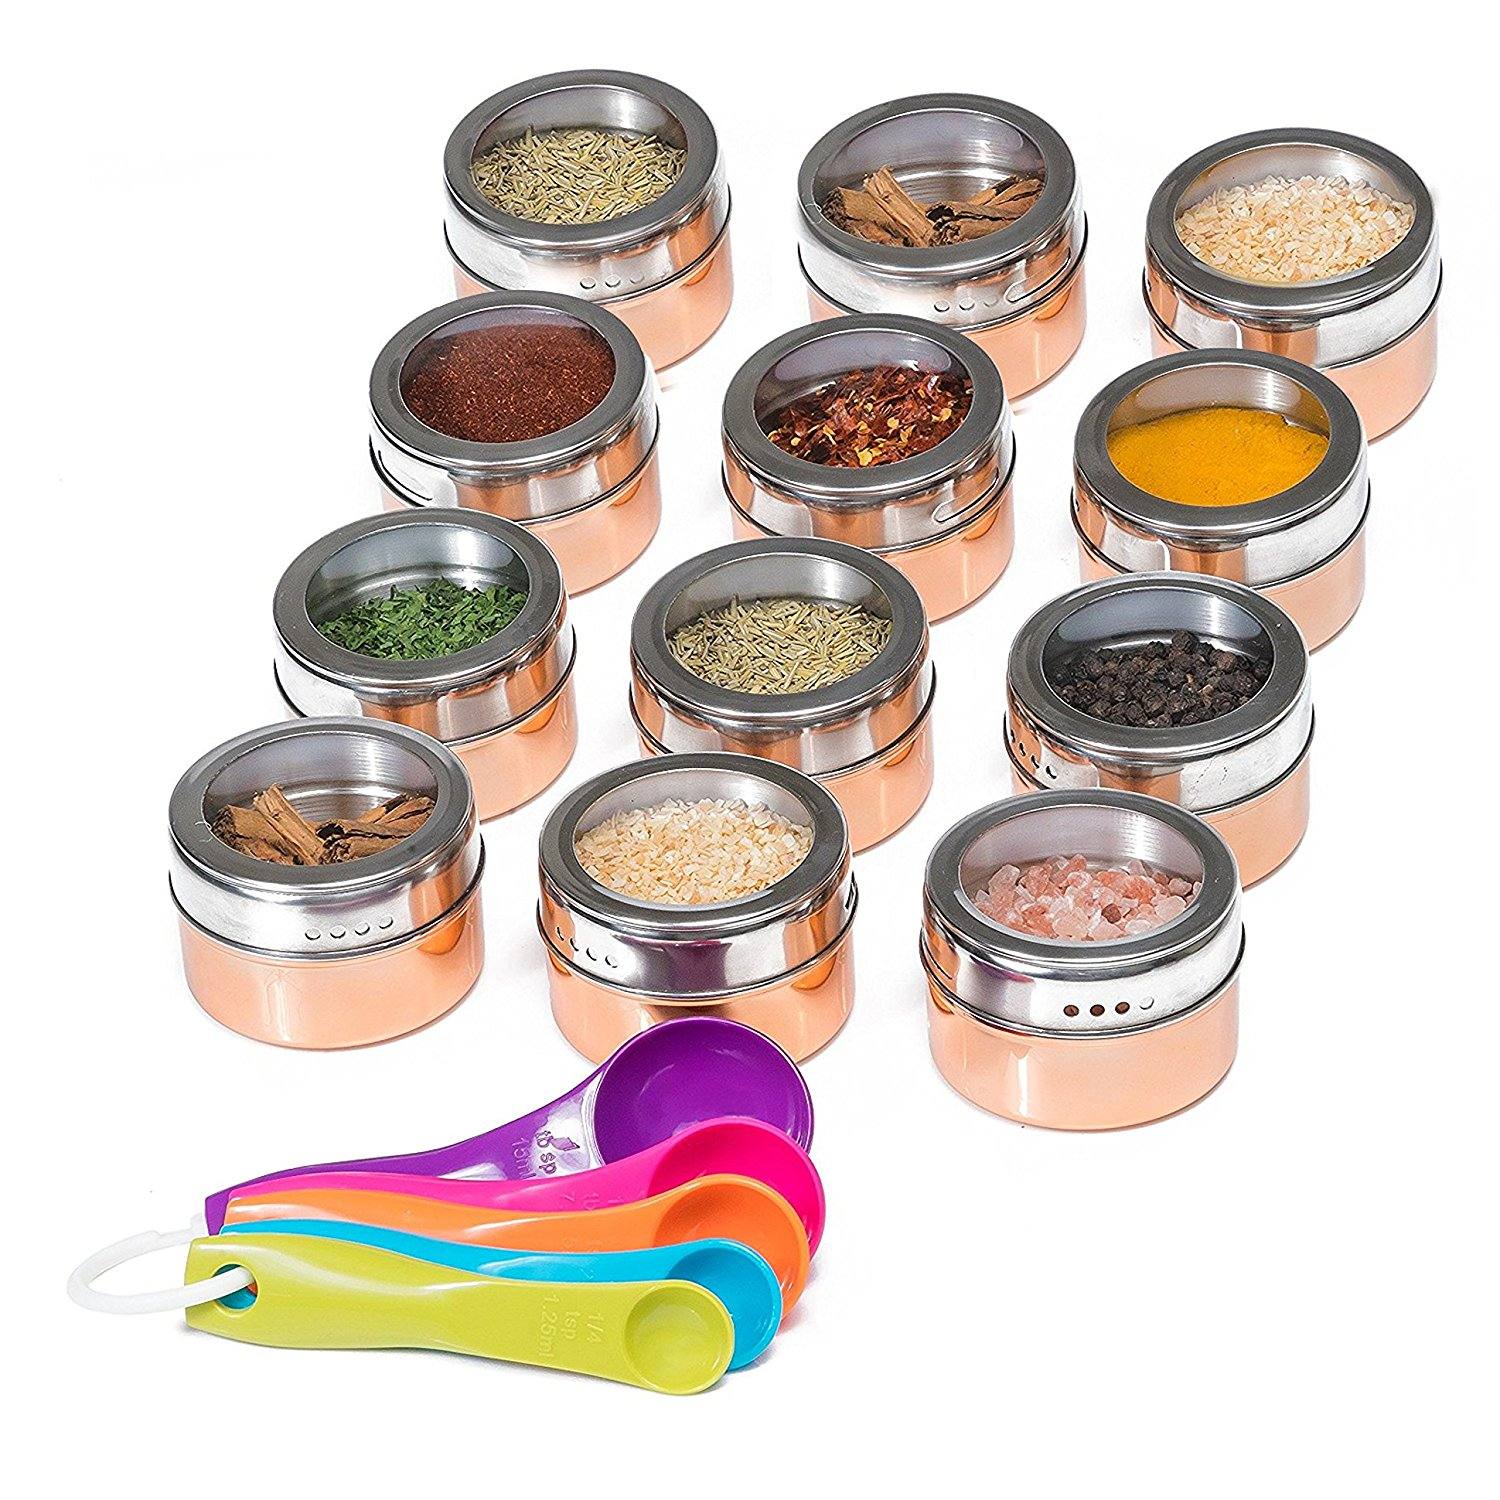 Spice Magnetic Storage Jars for Spices - 12pcs Stainless ...